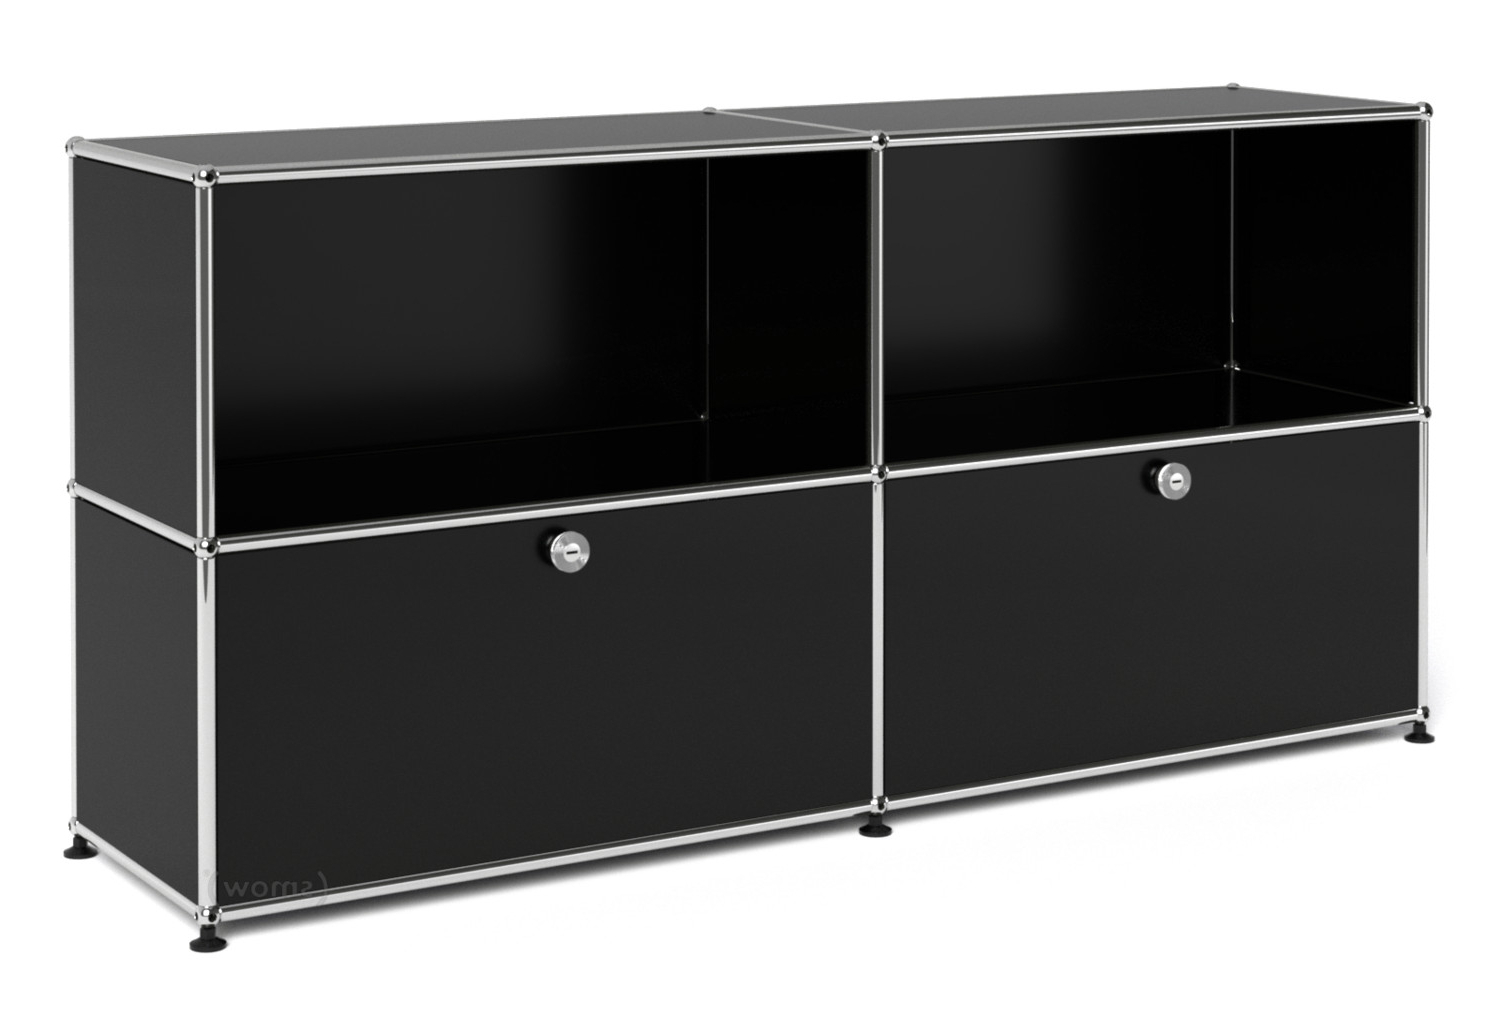 Well Known Usm Haller Sideboard L With 2 Drop Down Doorsfritz Haller & Paul Pertaining To Square Brass 4 Door Sideboards (View 20 of 20)